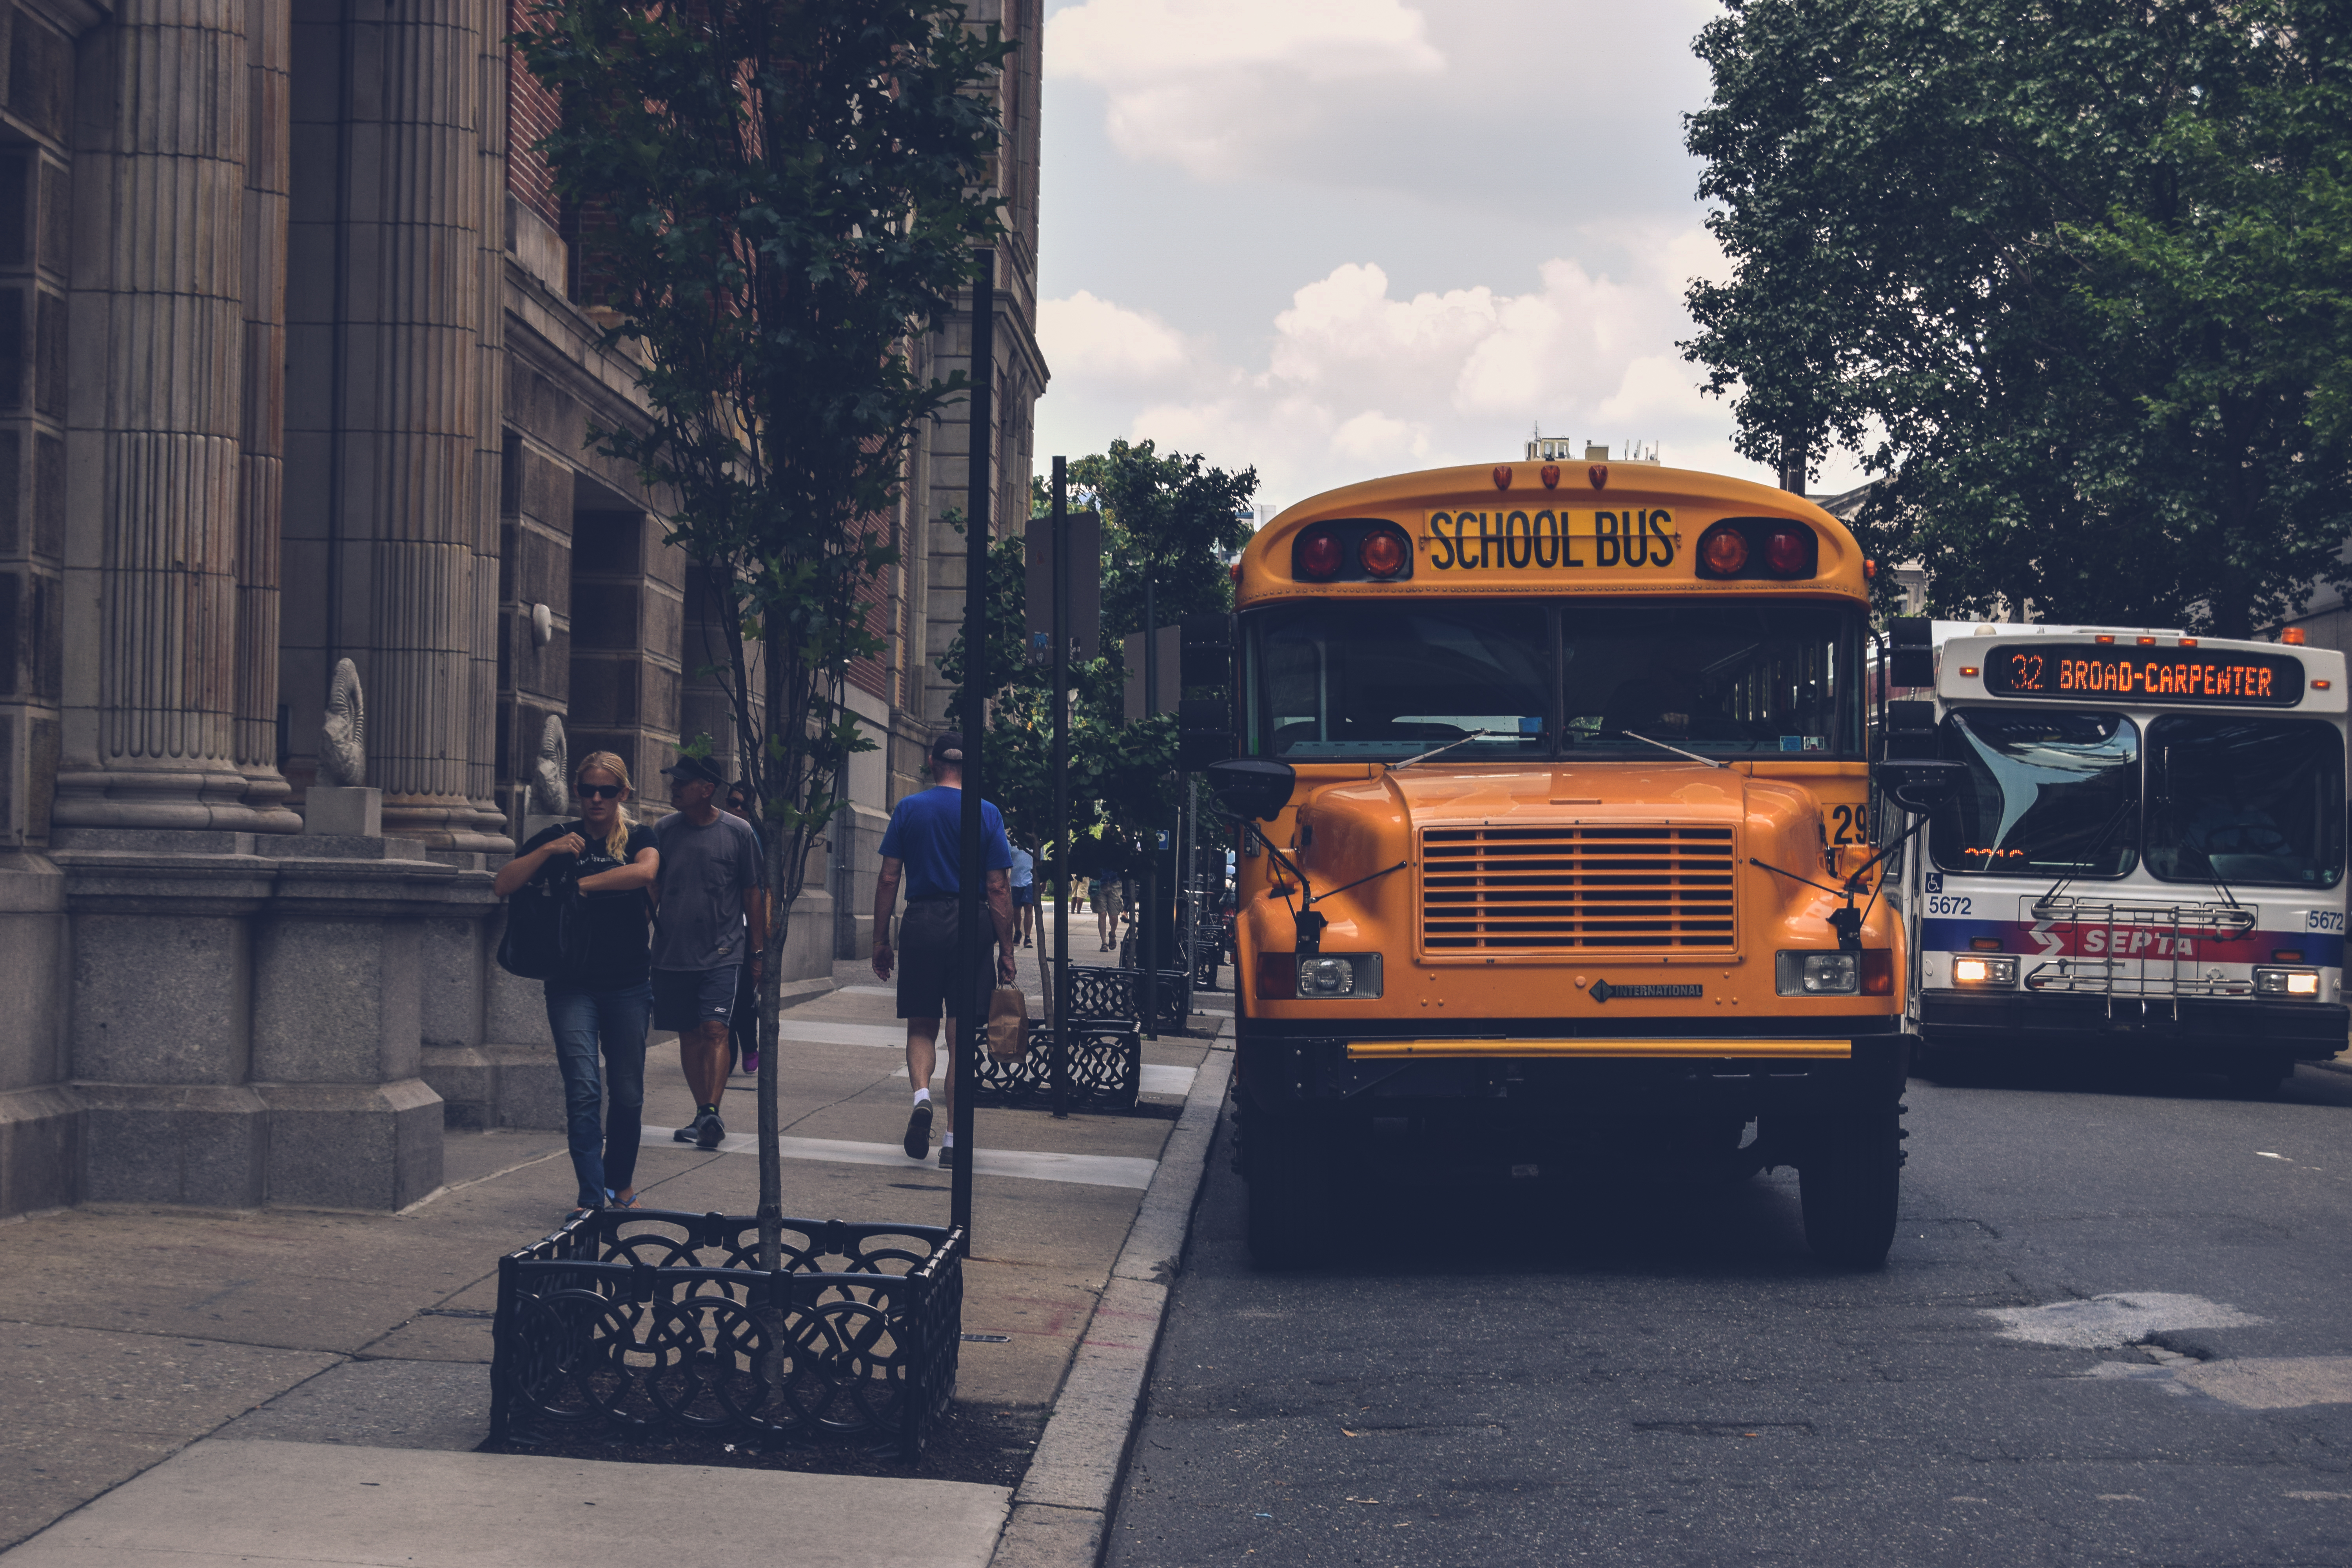 School bus parked on a street.